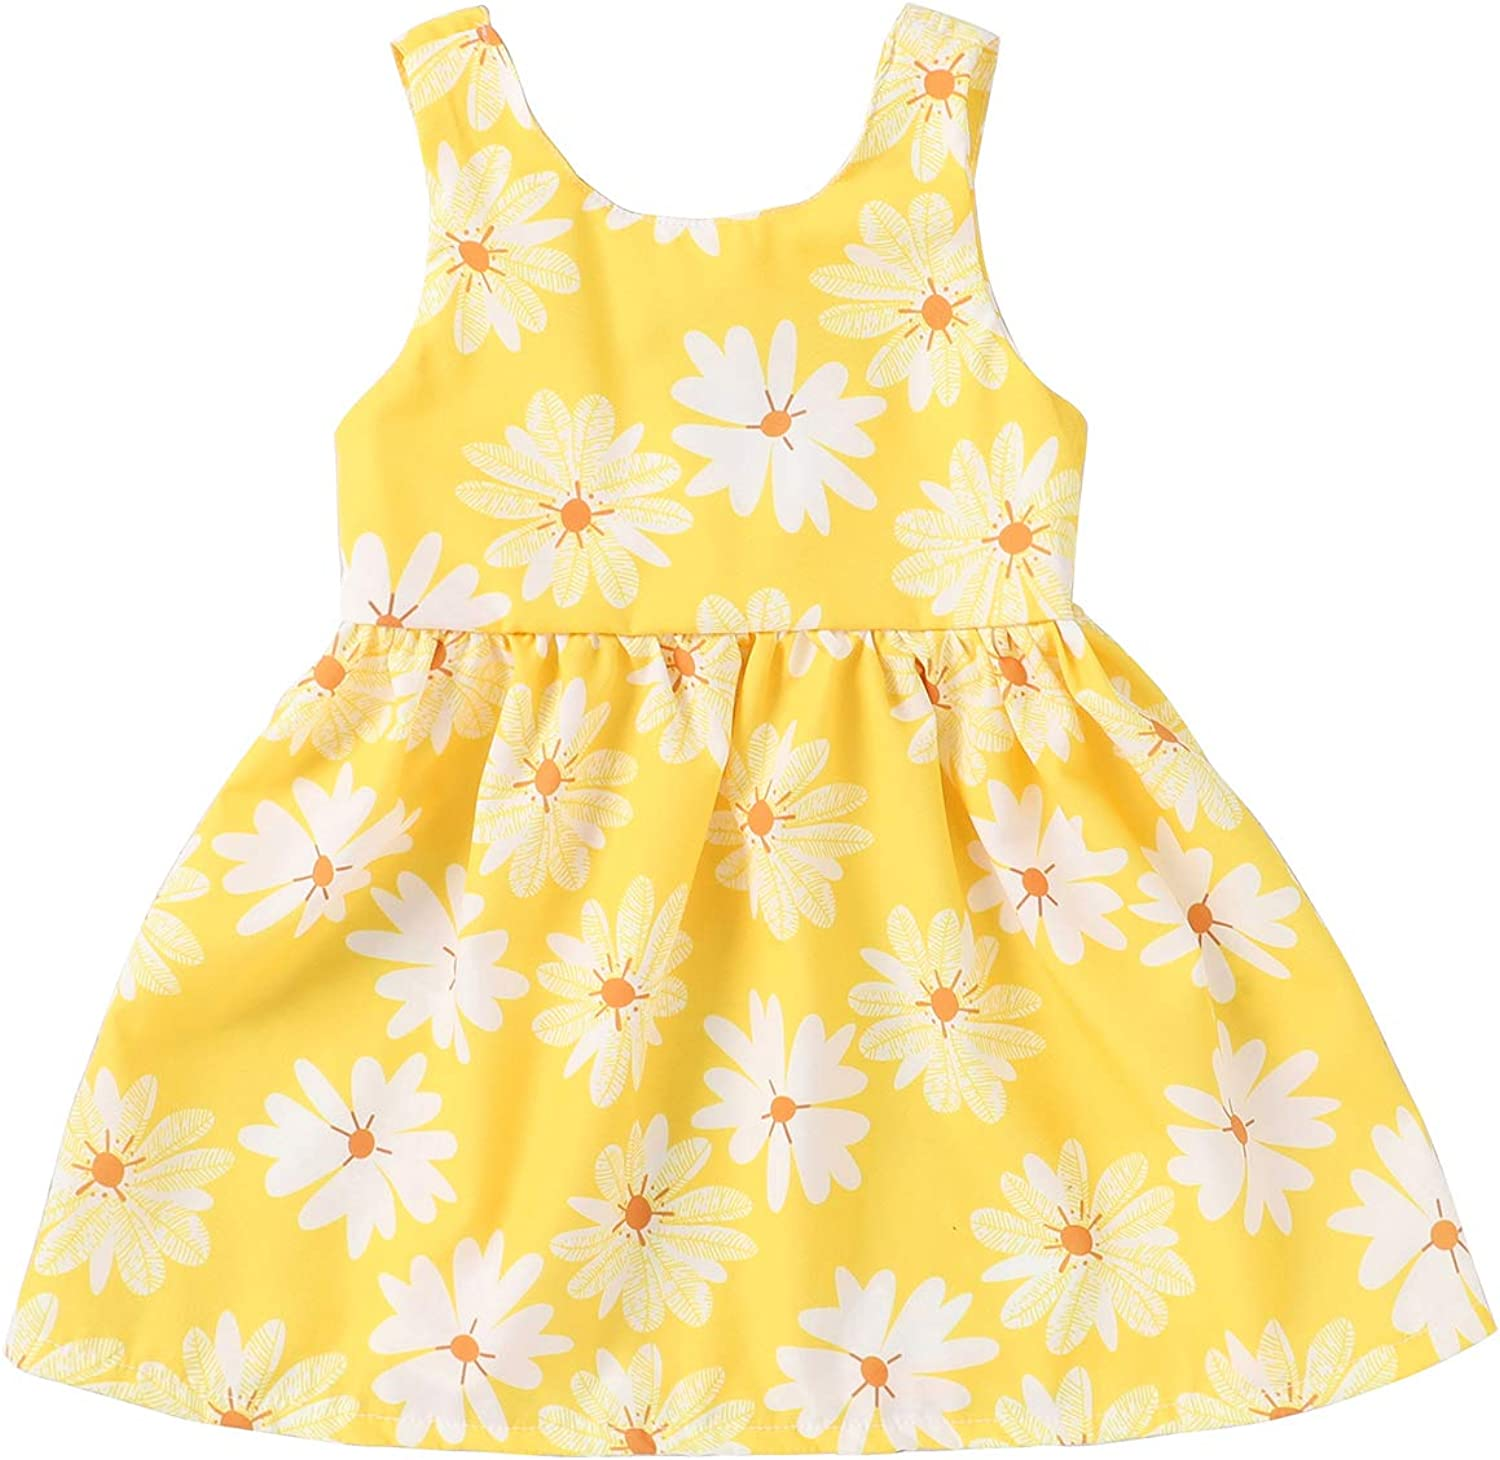 Girl Yellow Flowered Easter Dress Size 8 Special Occasion Dress Sundress Black Yellow Girl Size 8 Spring Summer Cotton Dress for Girls